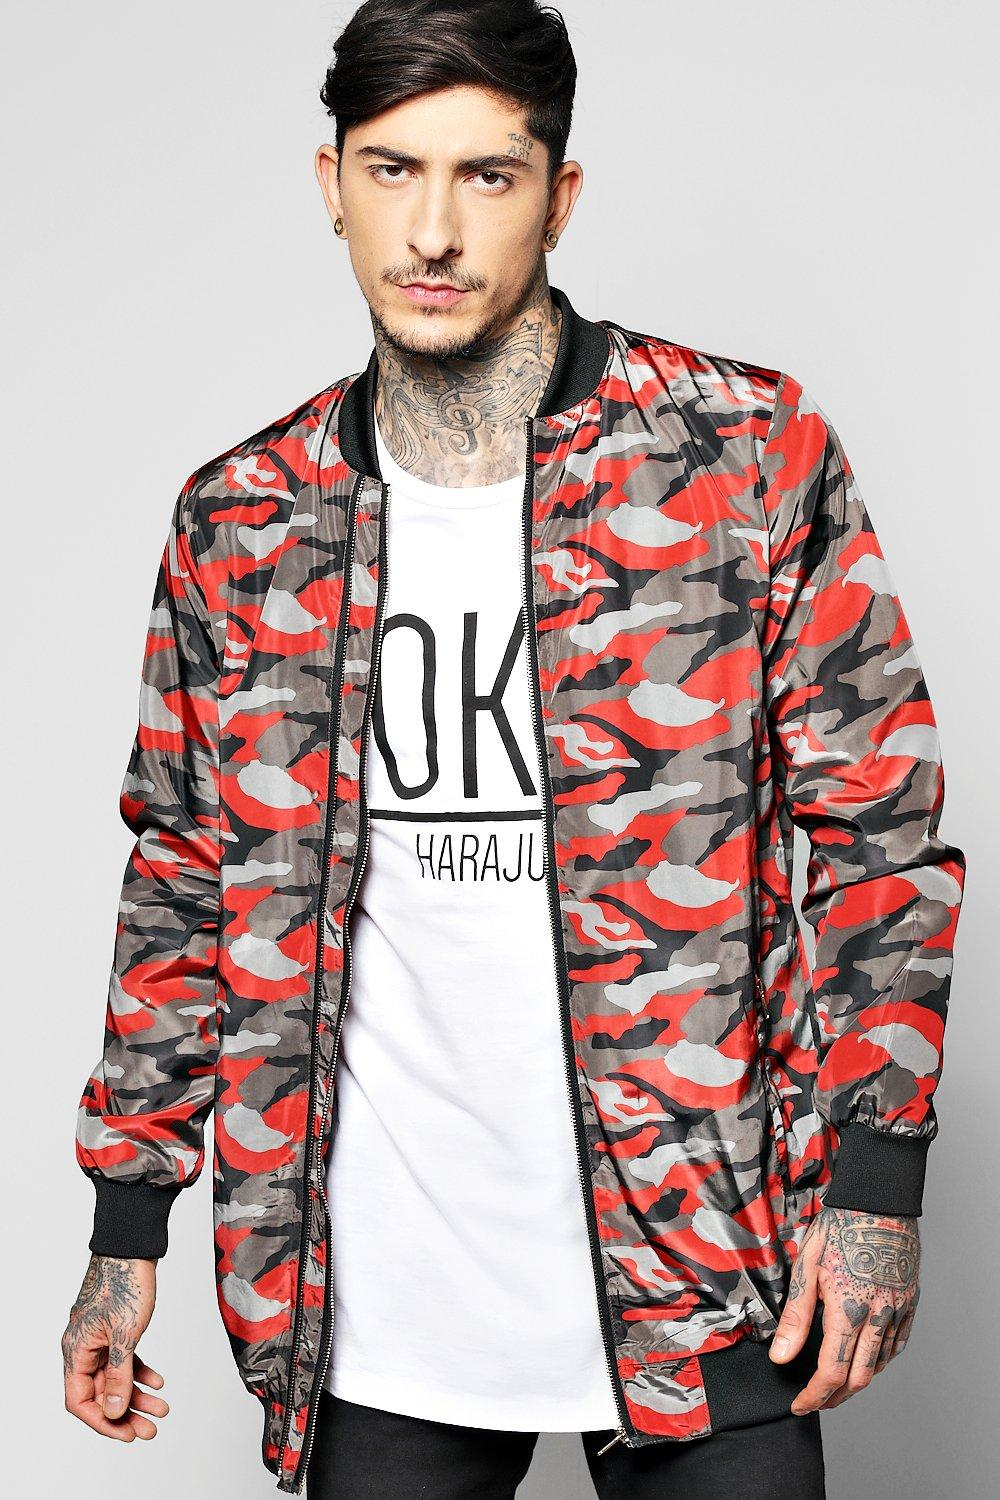 Image of All Over Camo Multi Zip Jacket - red